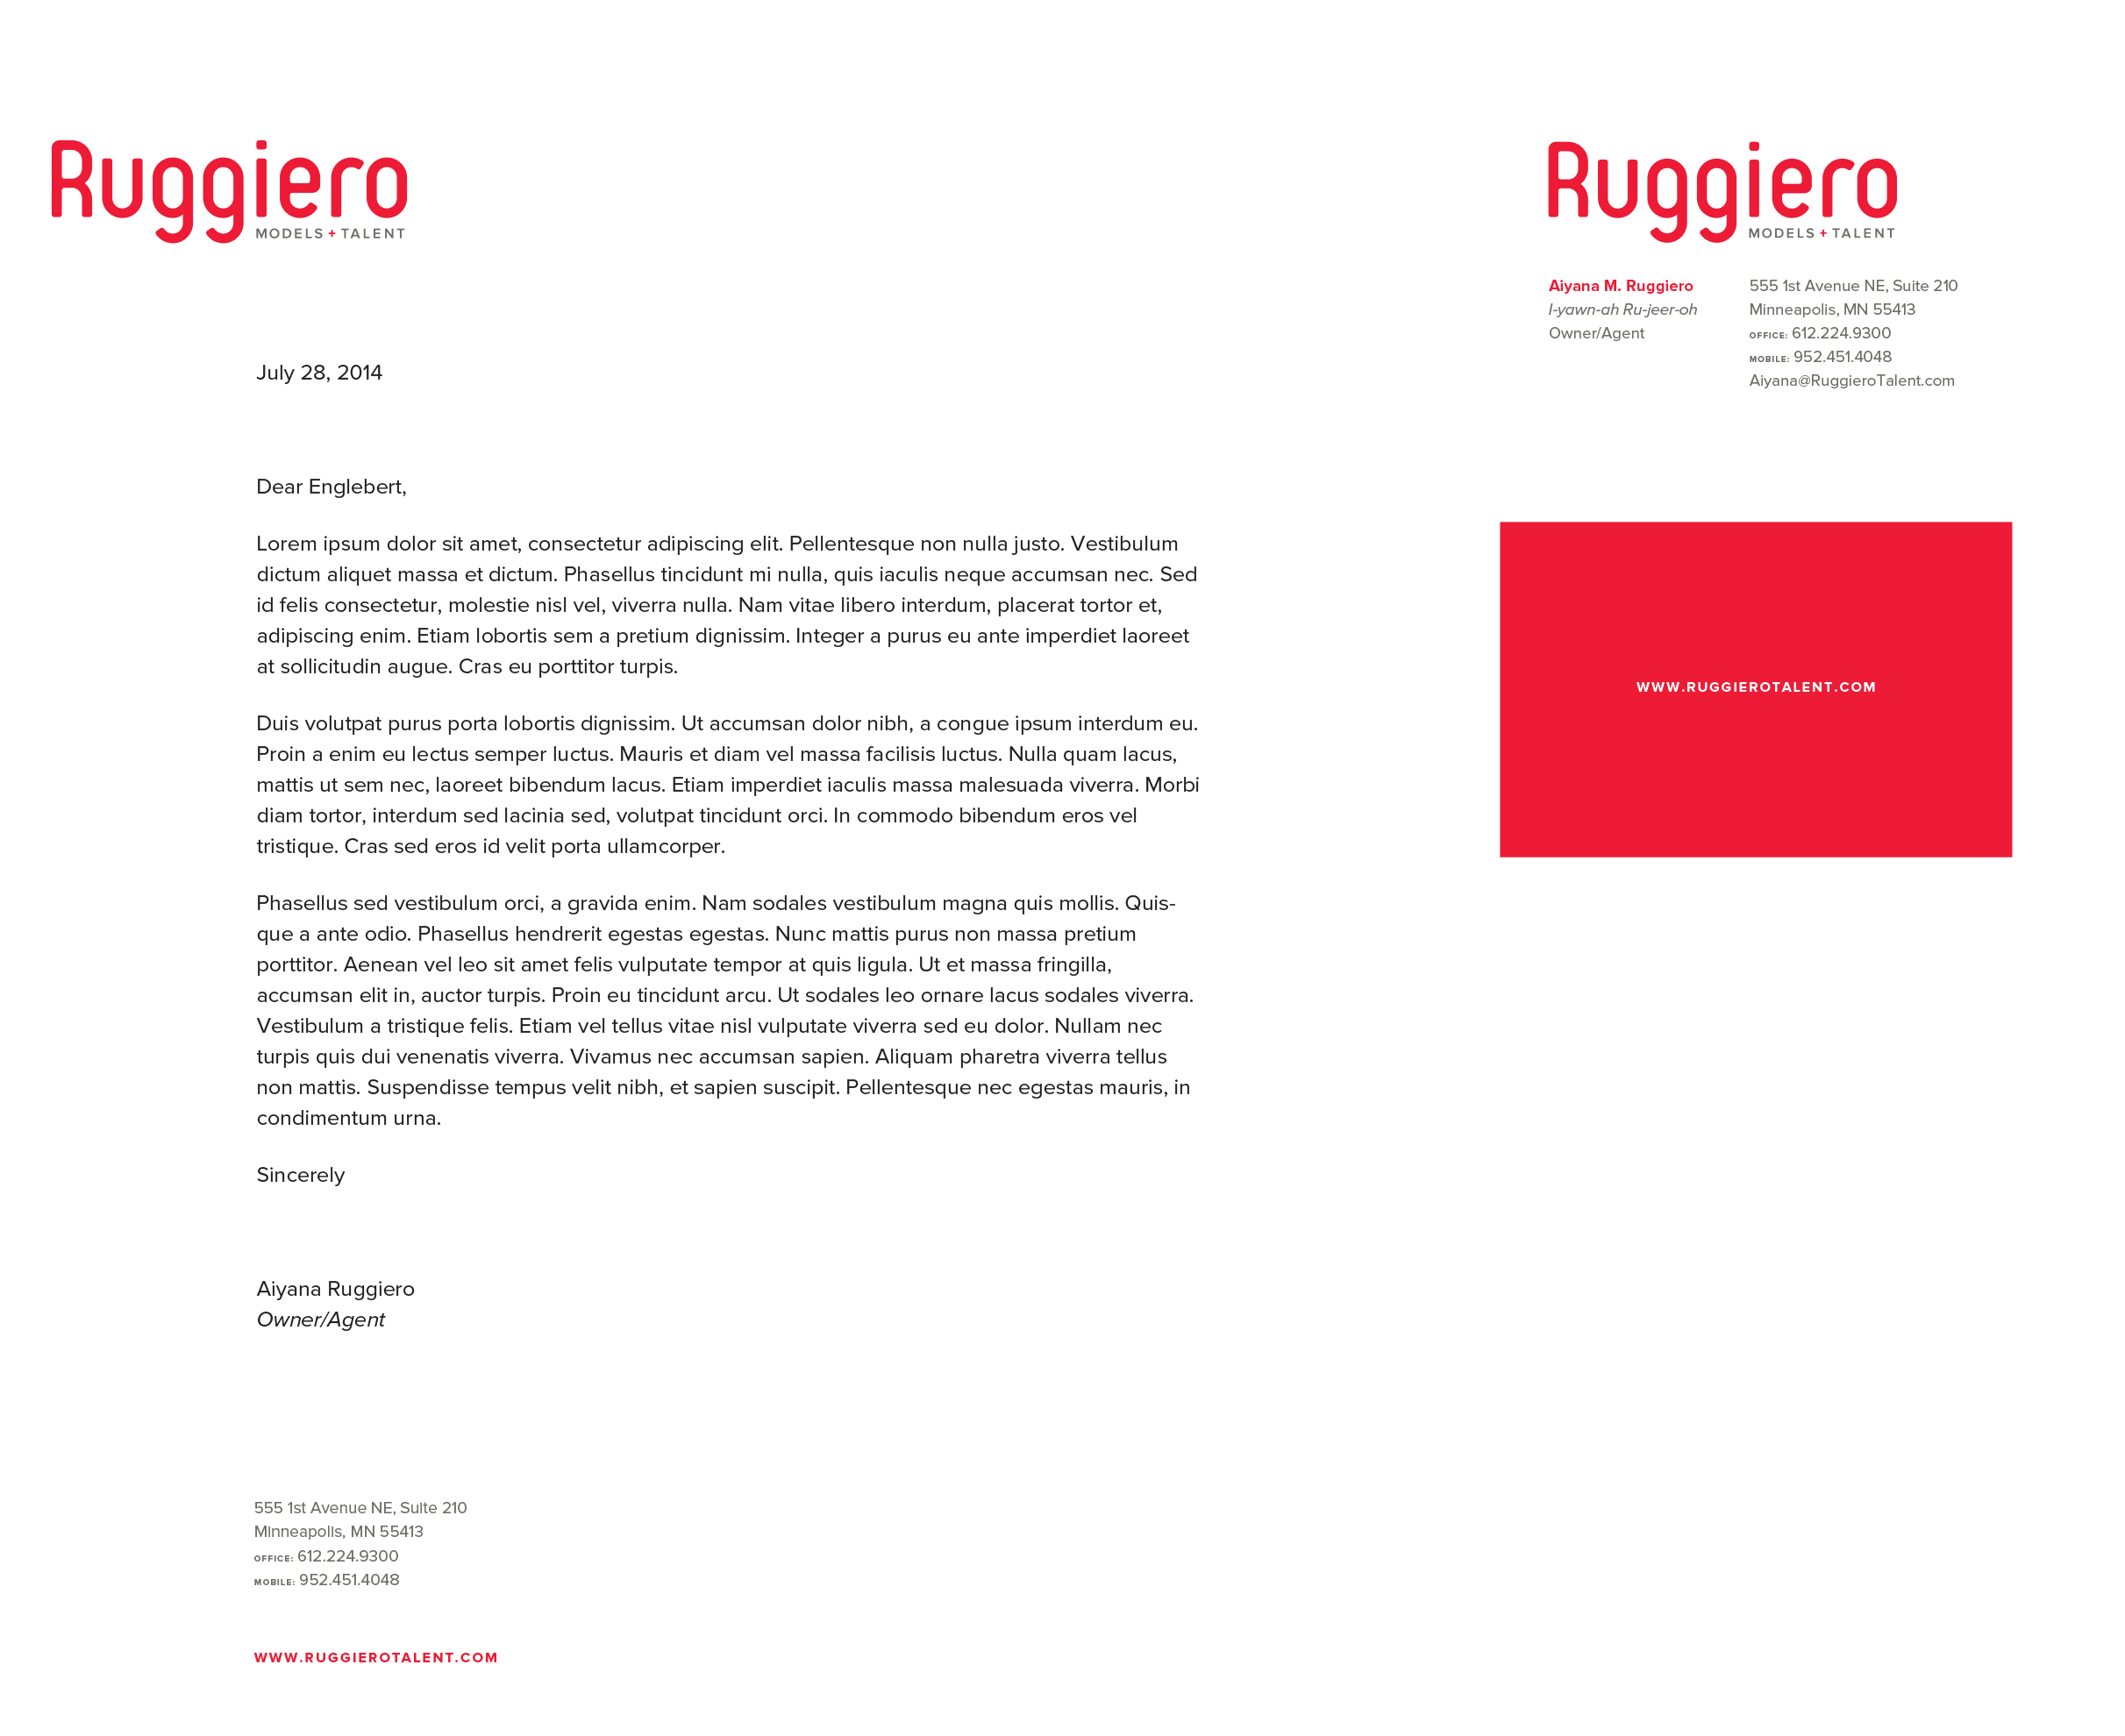 Ruggiero Models & Talent Stationery